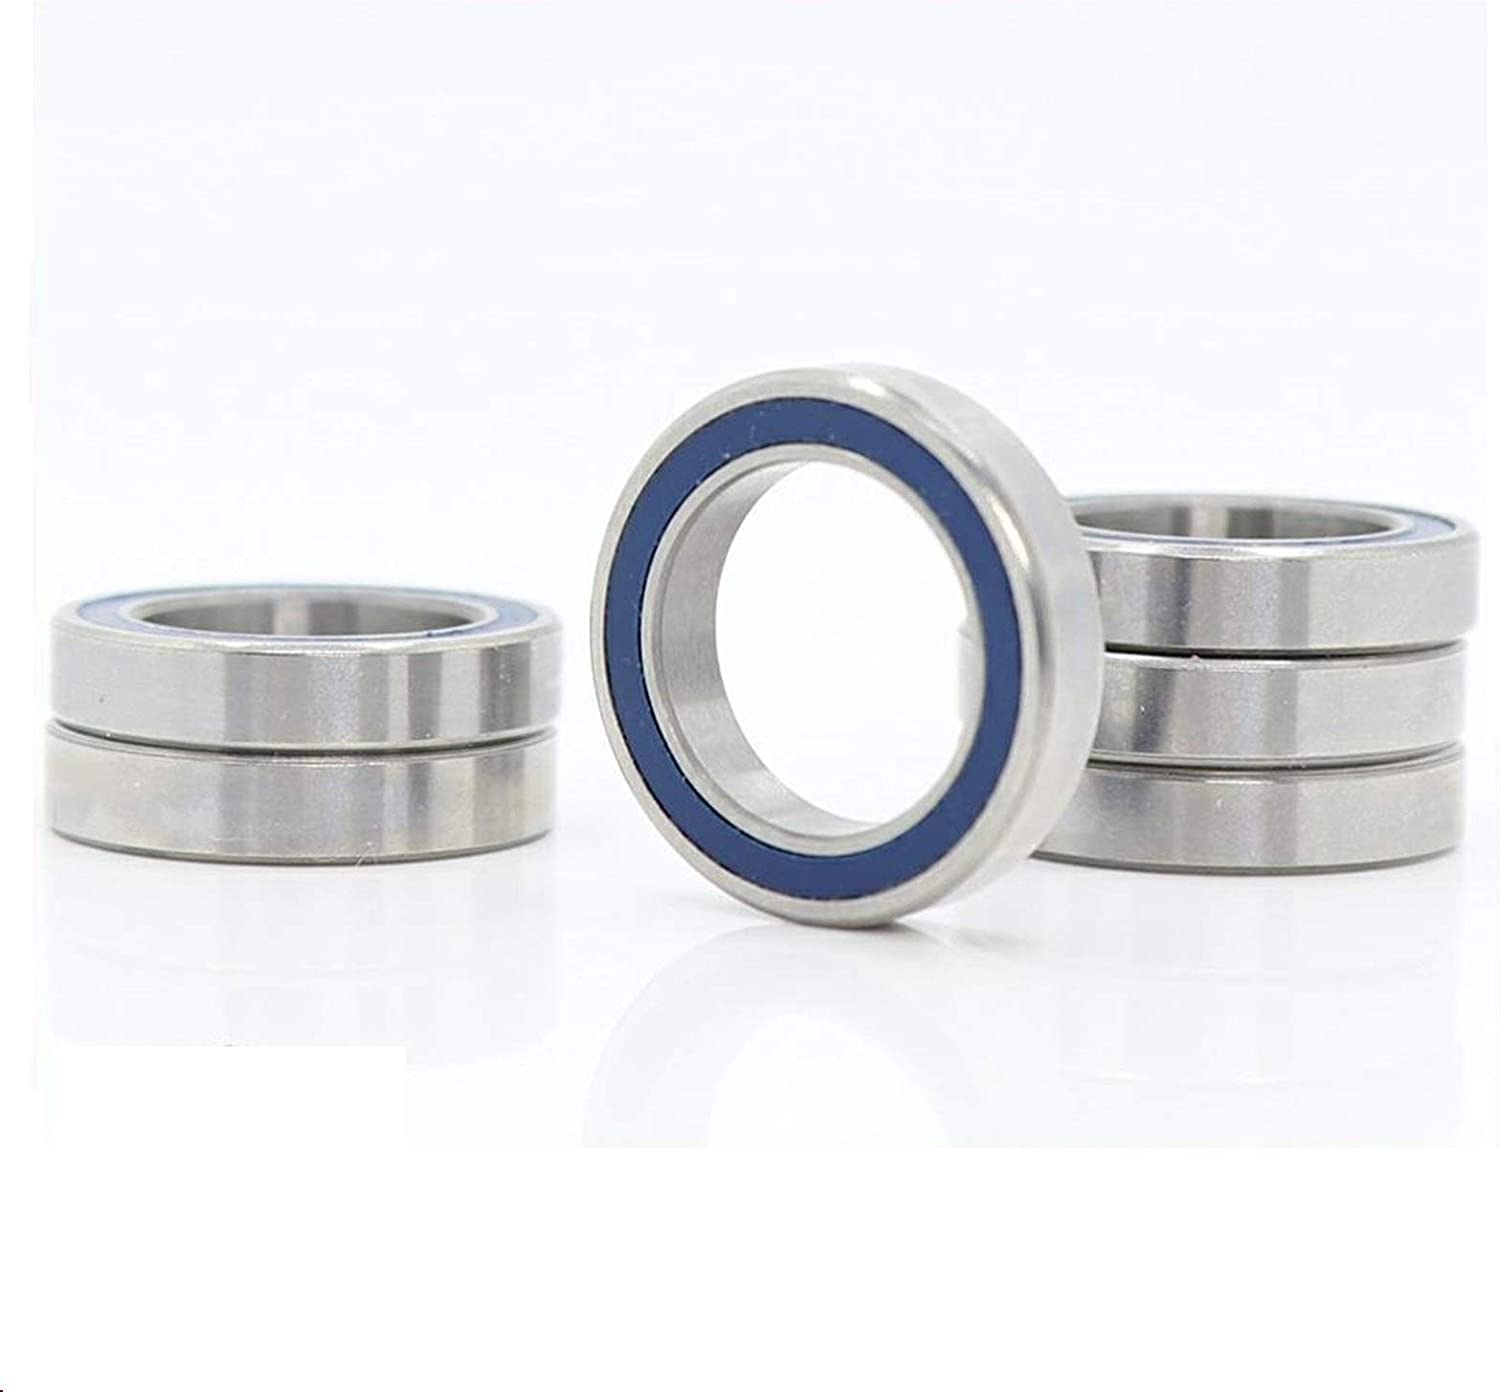 Ranking TOP6 Liuxiaobo-Bearing R1212rs Bearings Blue Outlet sale feature Inch ABEC-3 Sealed Size